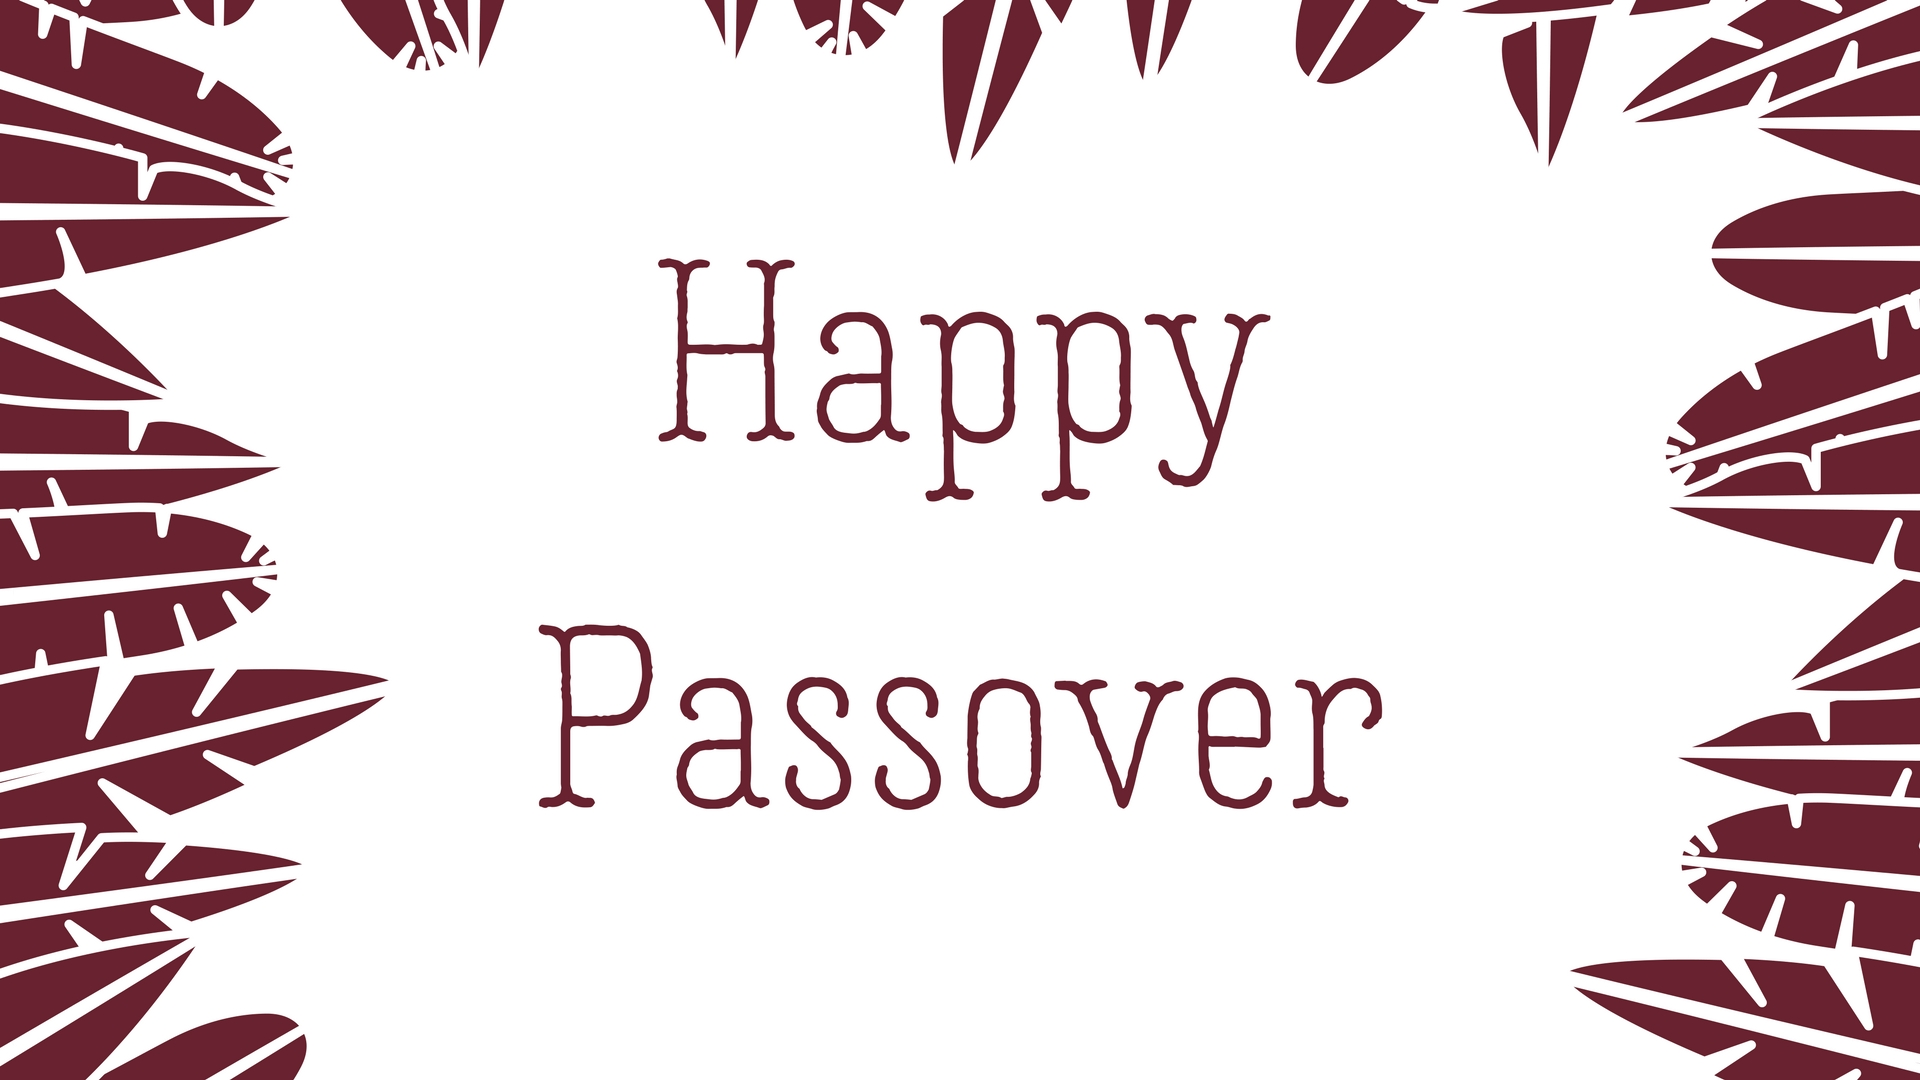 Happy Passover Rectangle Frame Greeting Card Postcard 28